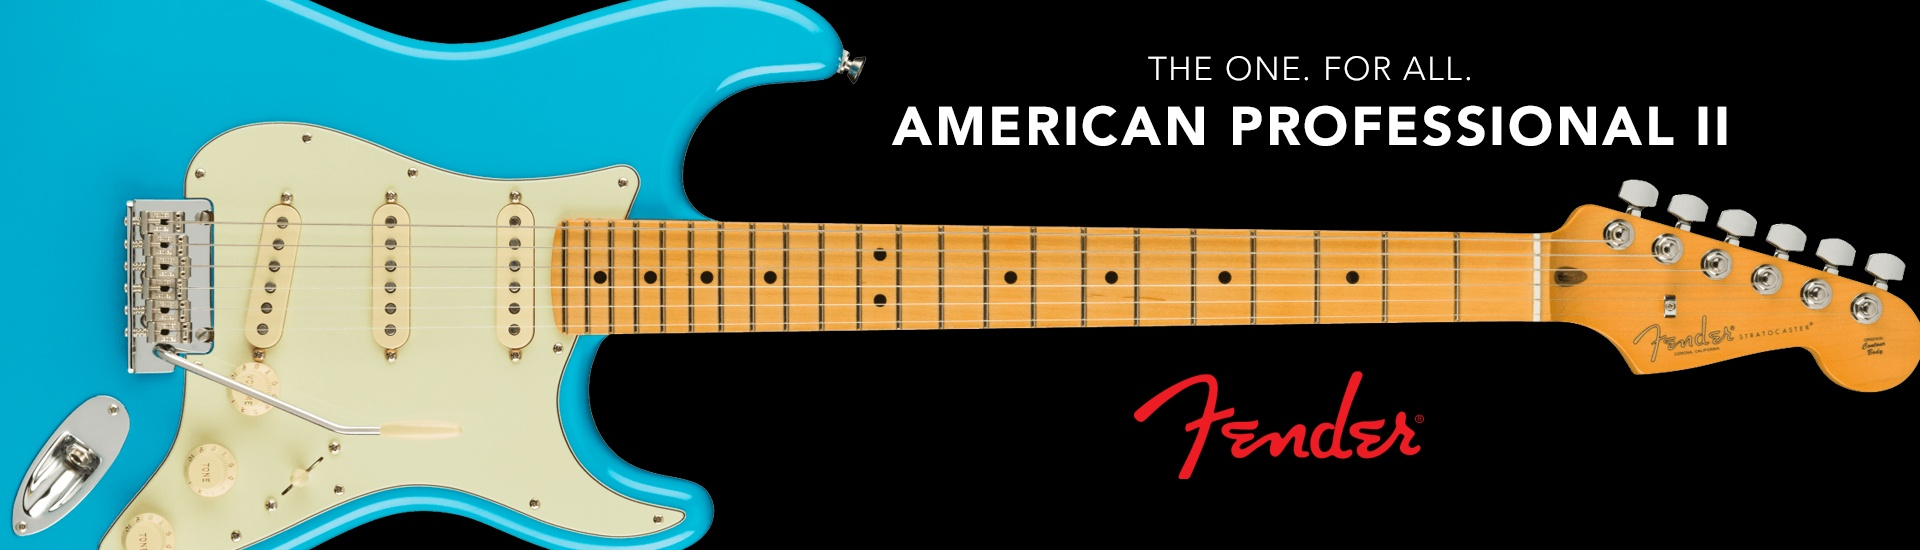 innovative evolutionary electric guitar from Fender